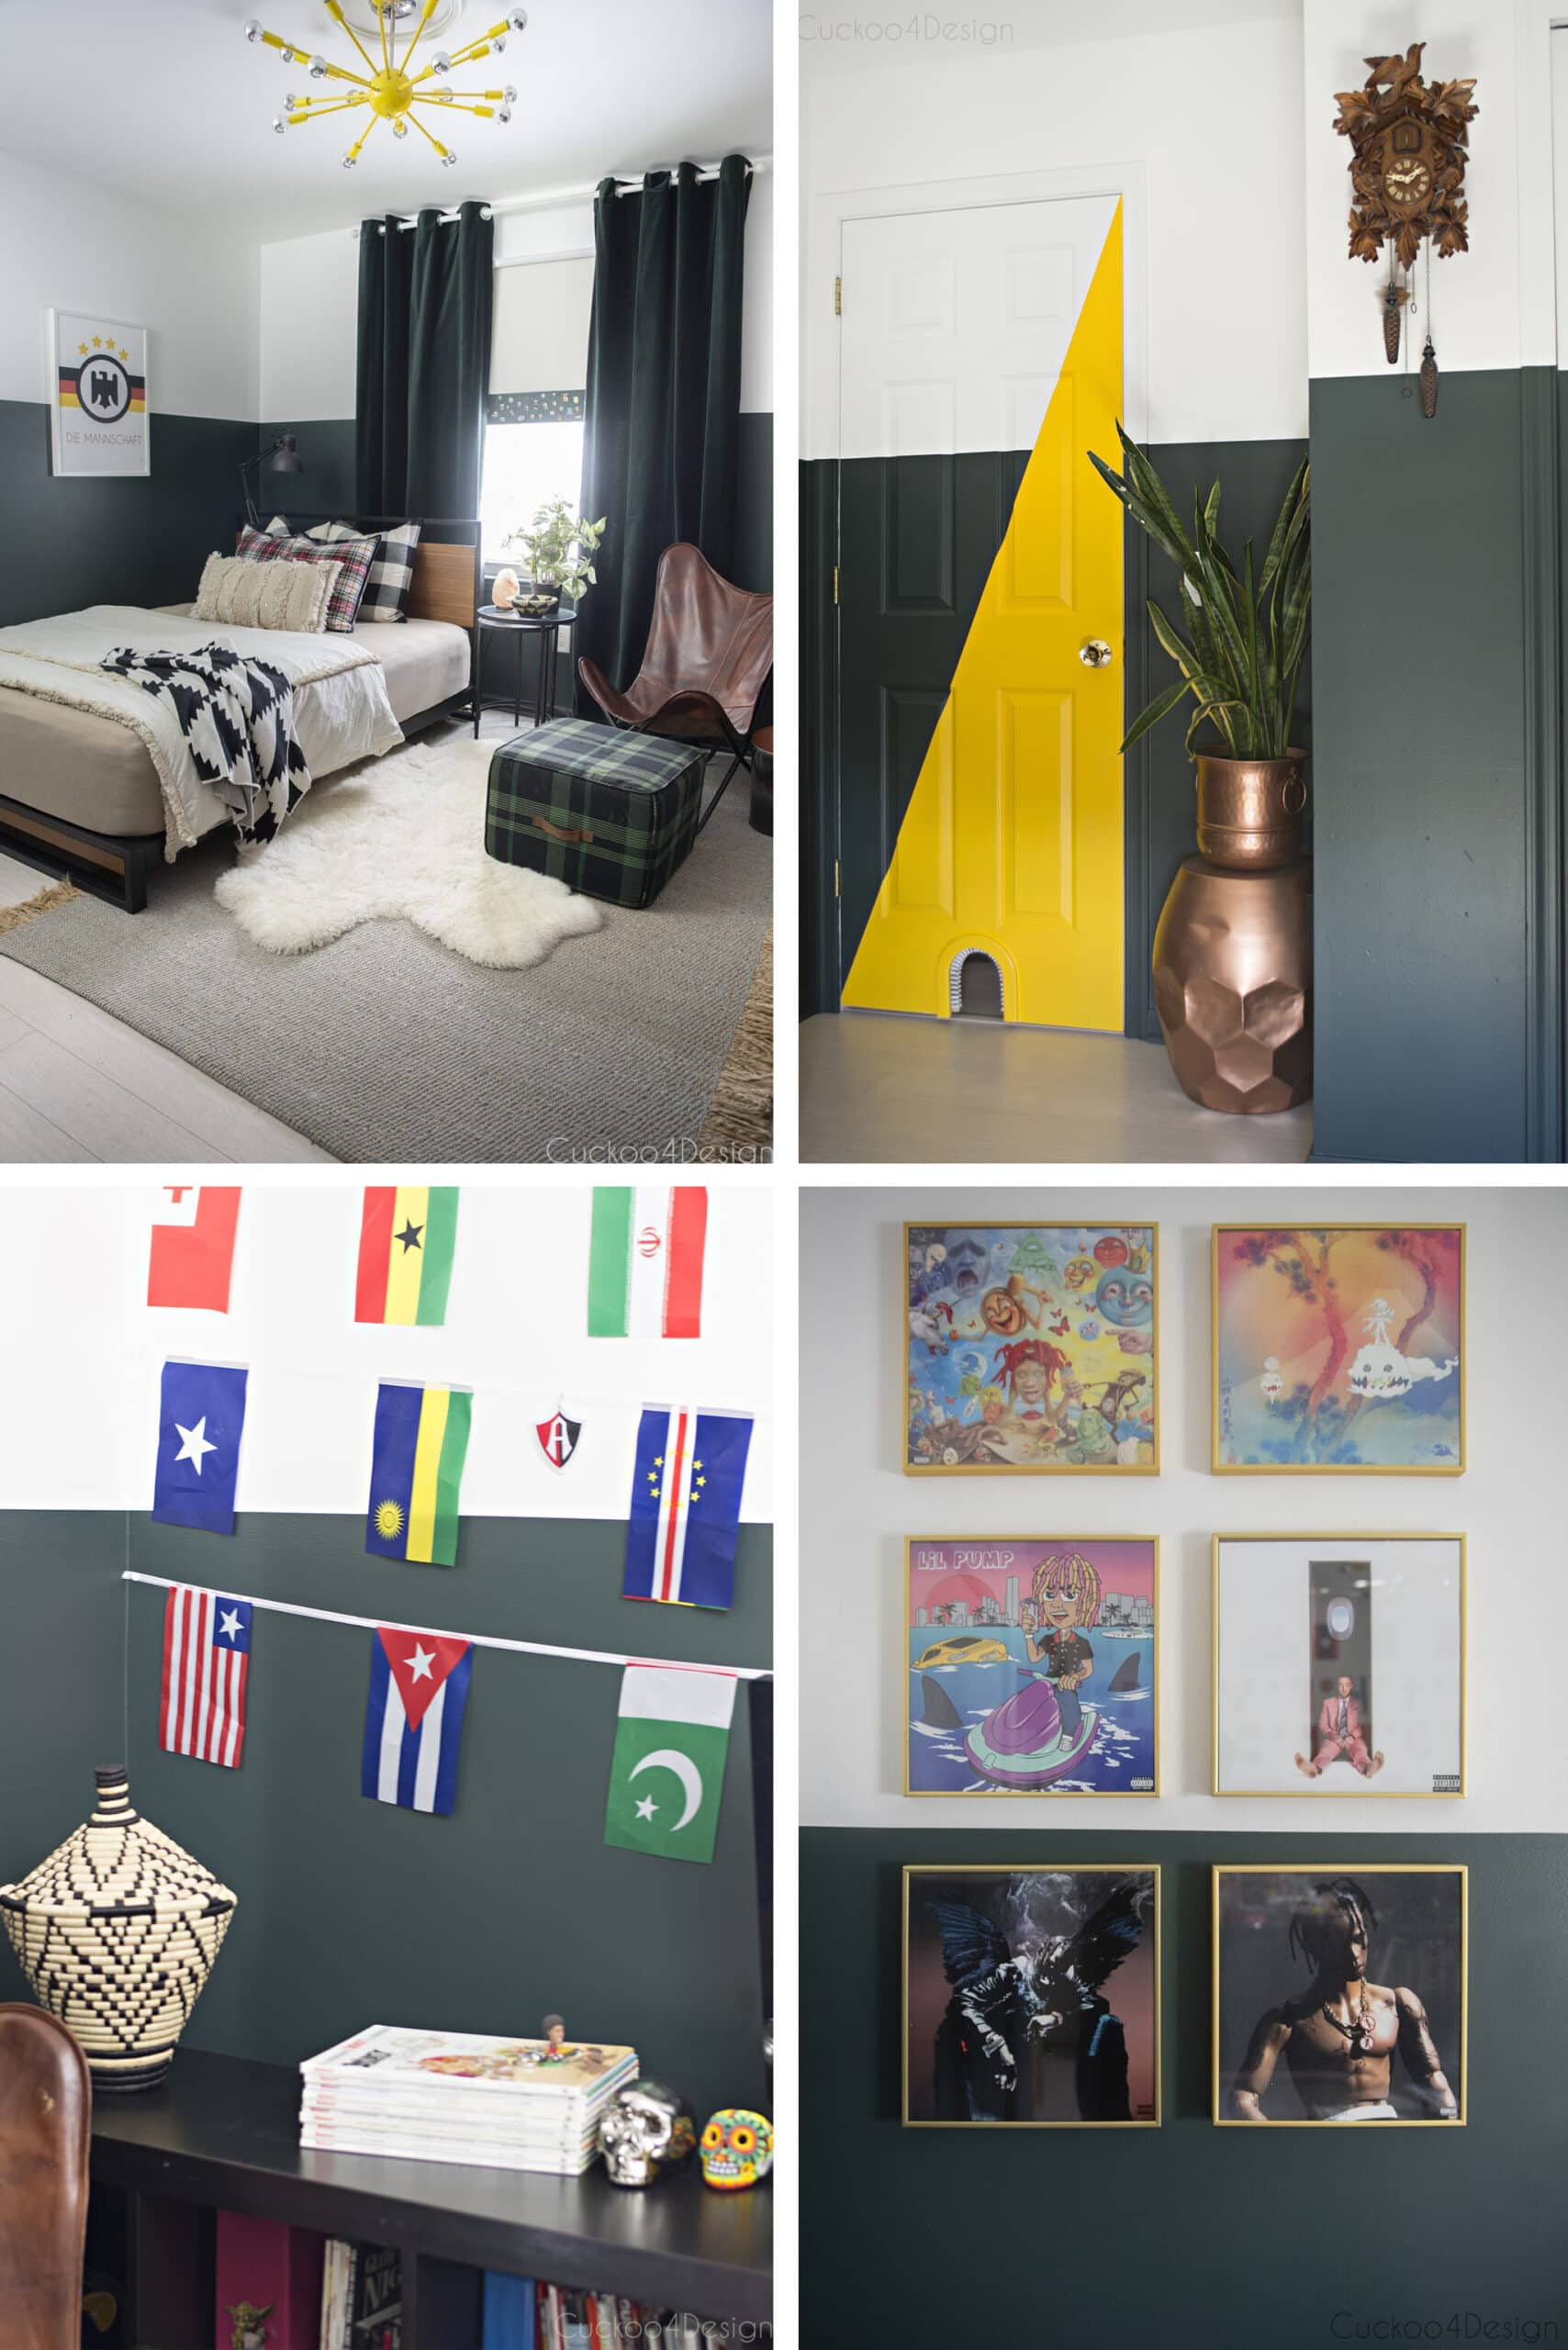 our son's room at home